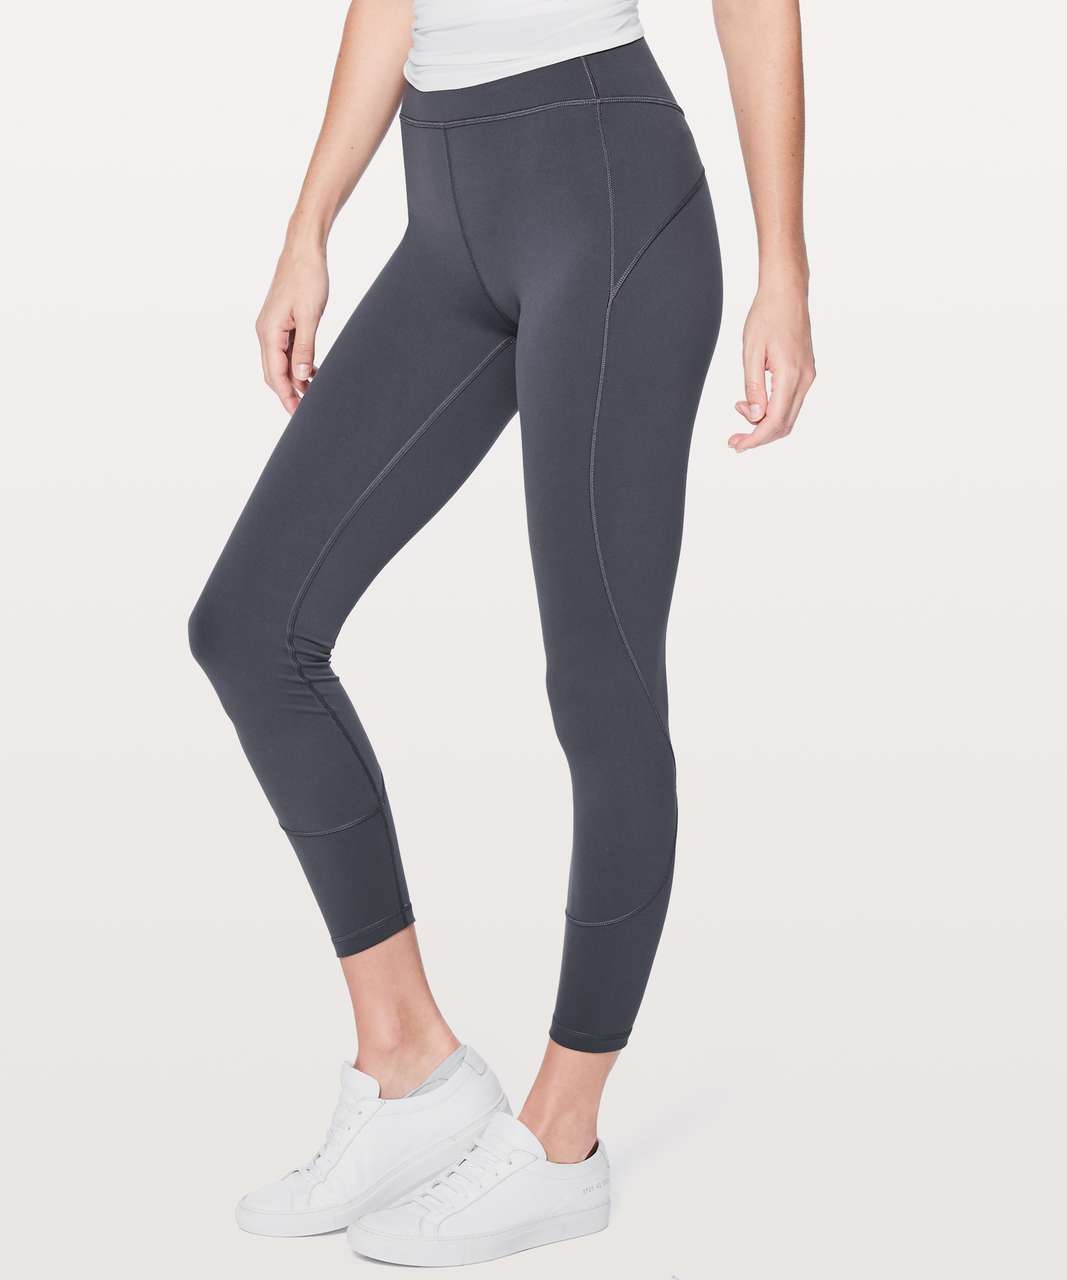 5747b720a9ab6 Lululemon In Movement 7/8 Tight Everlux 25